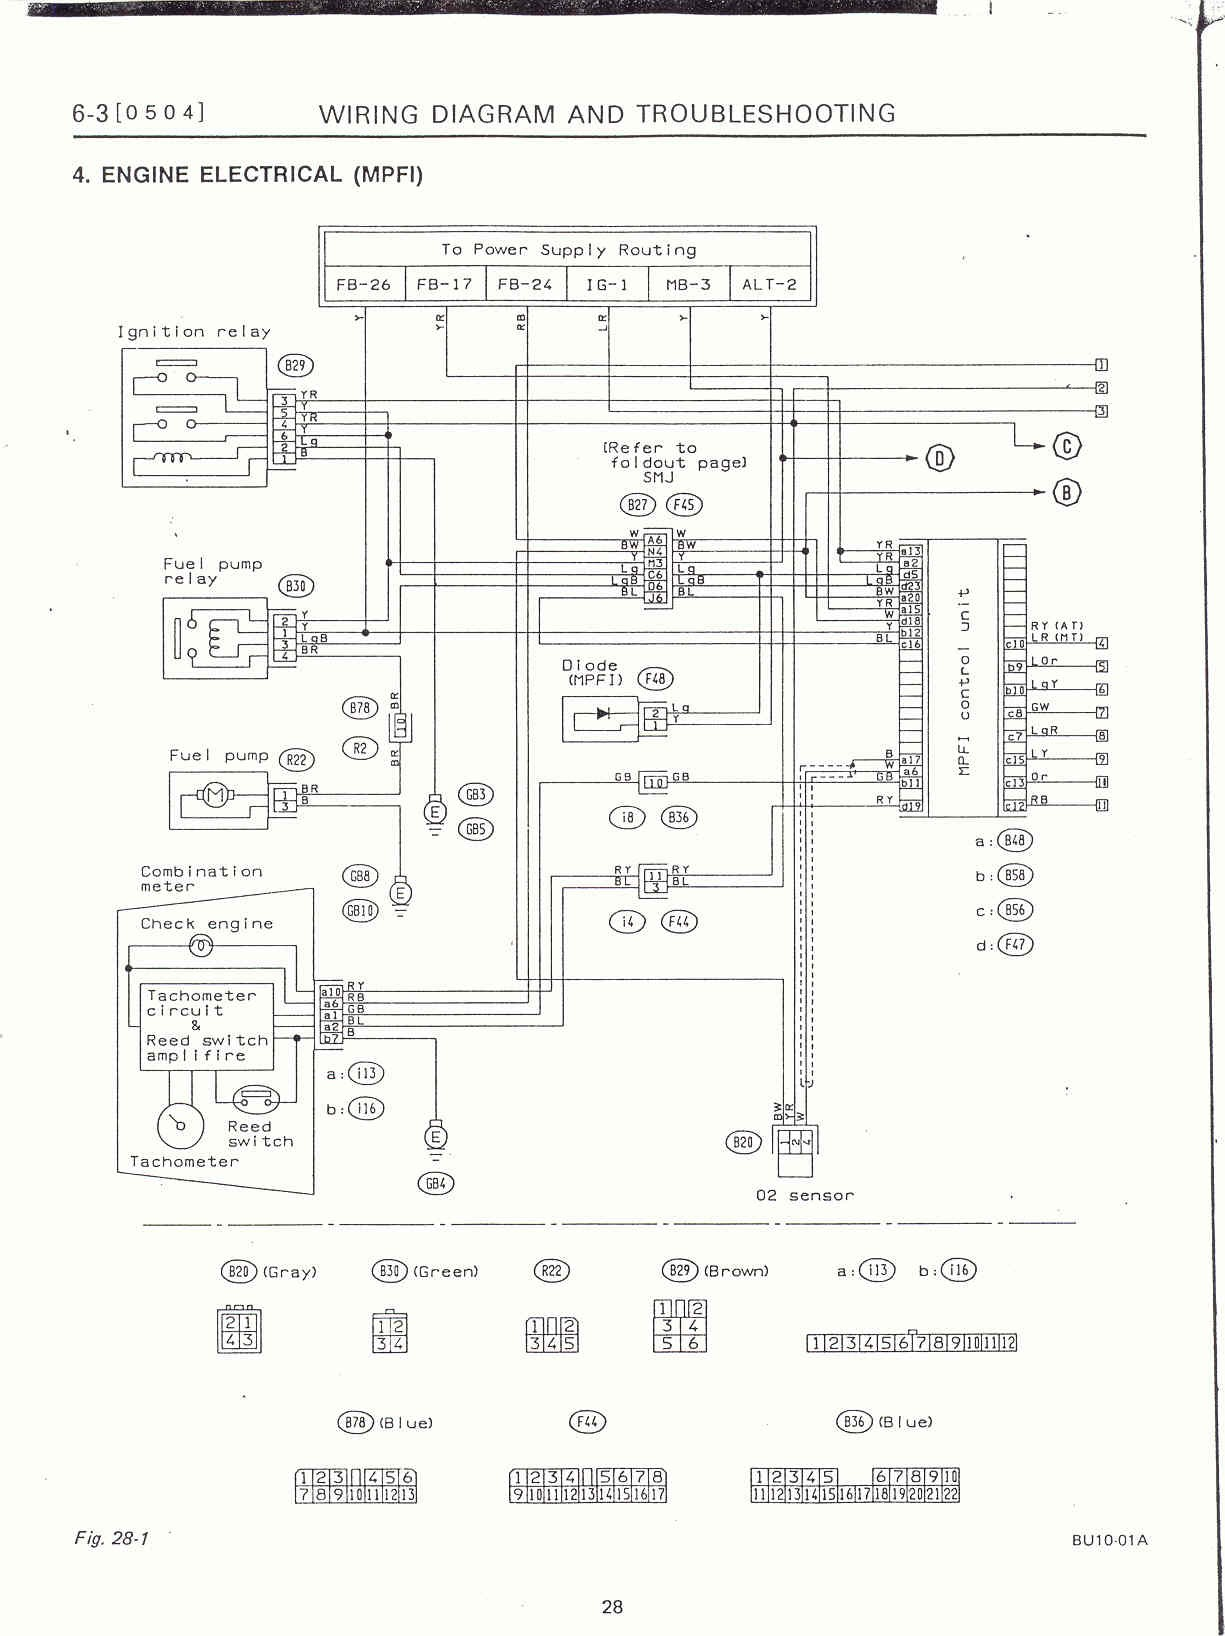 2001 subaru forester fuse box diagram